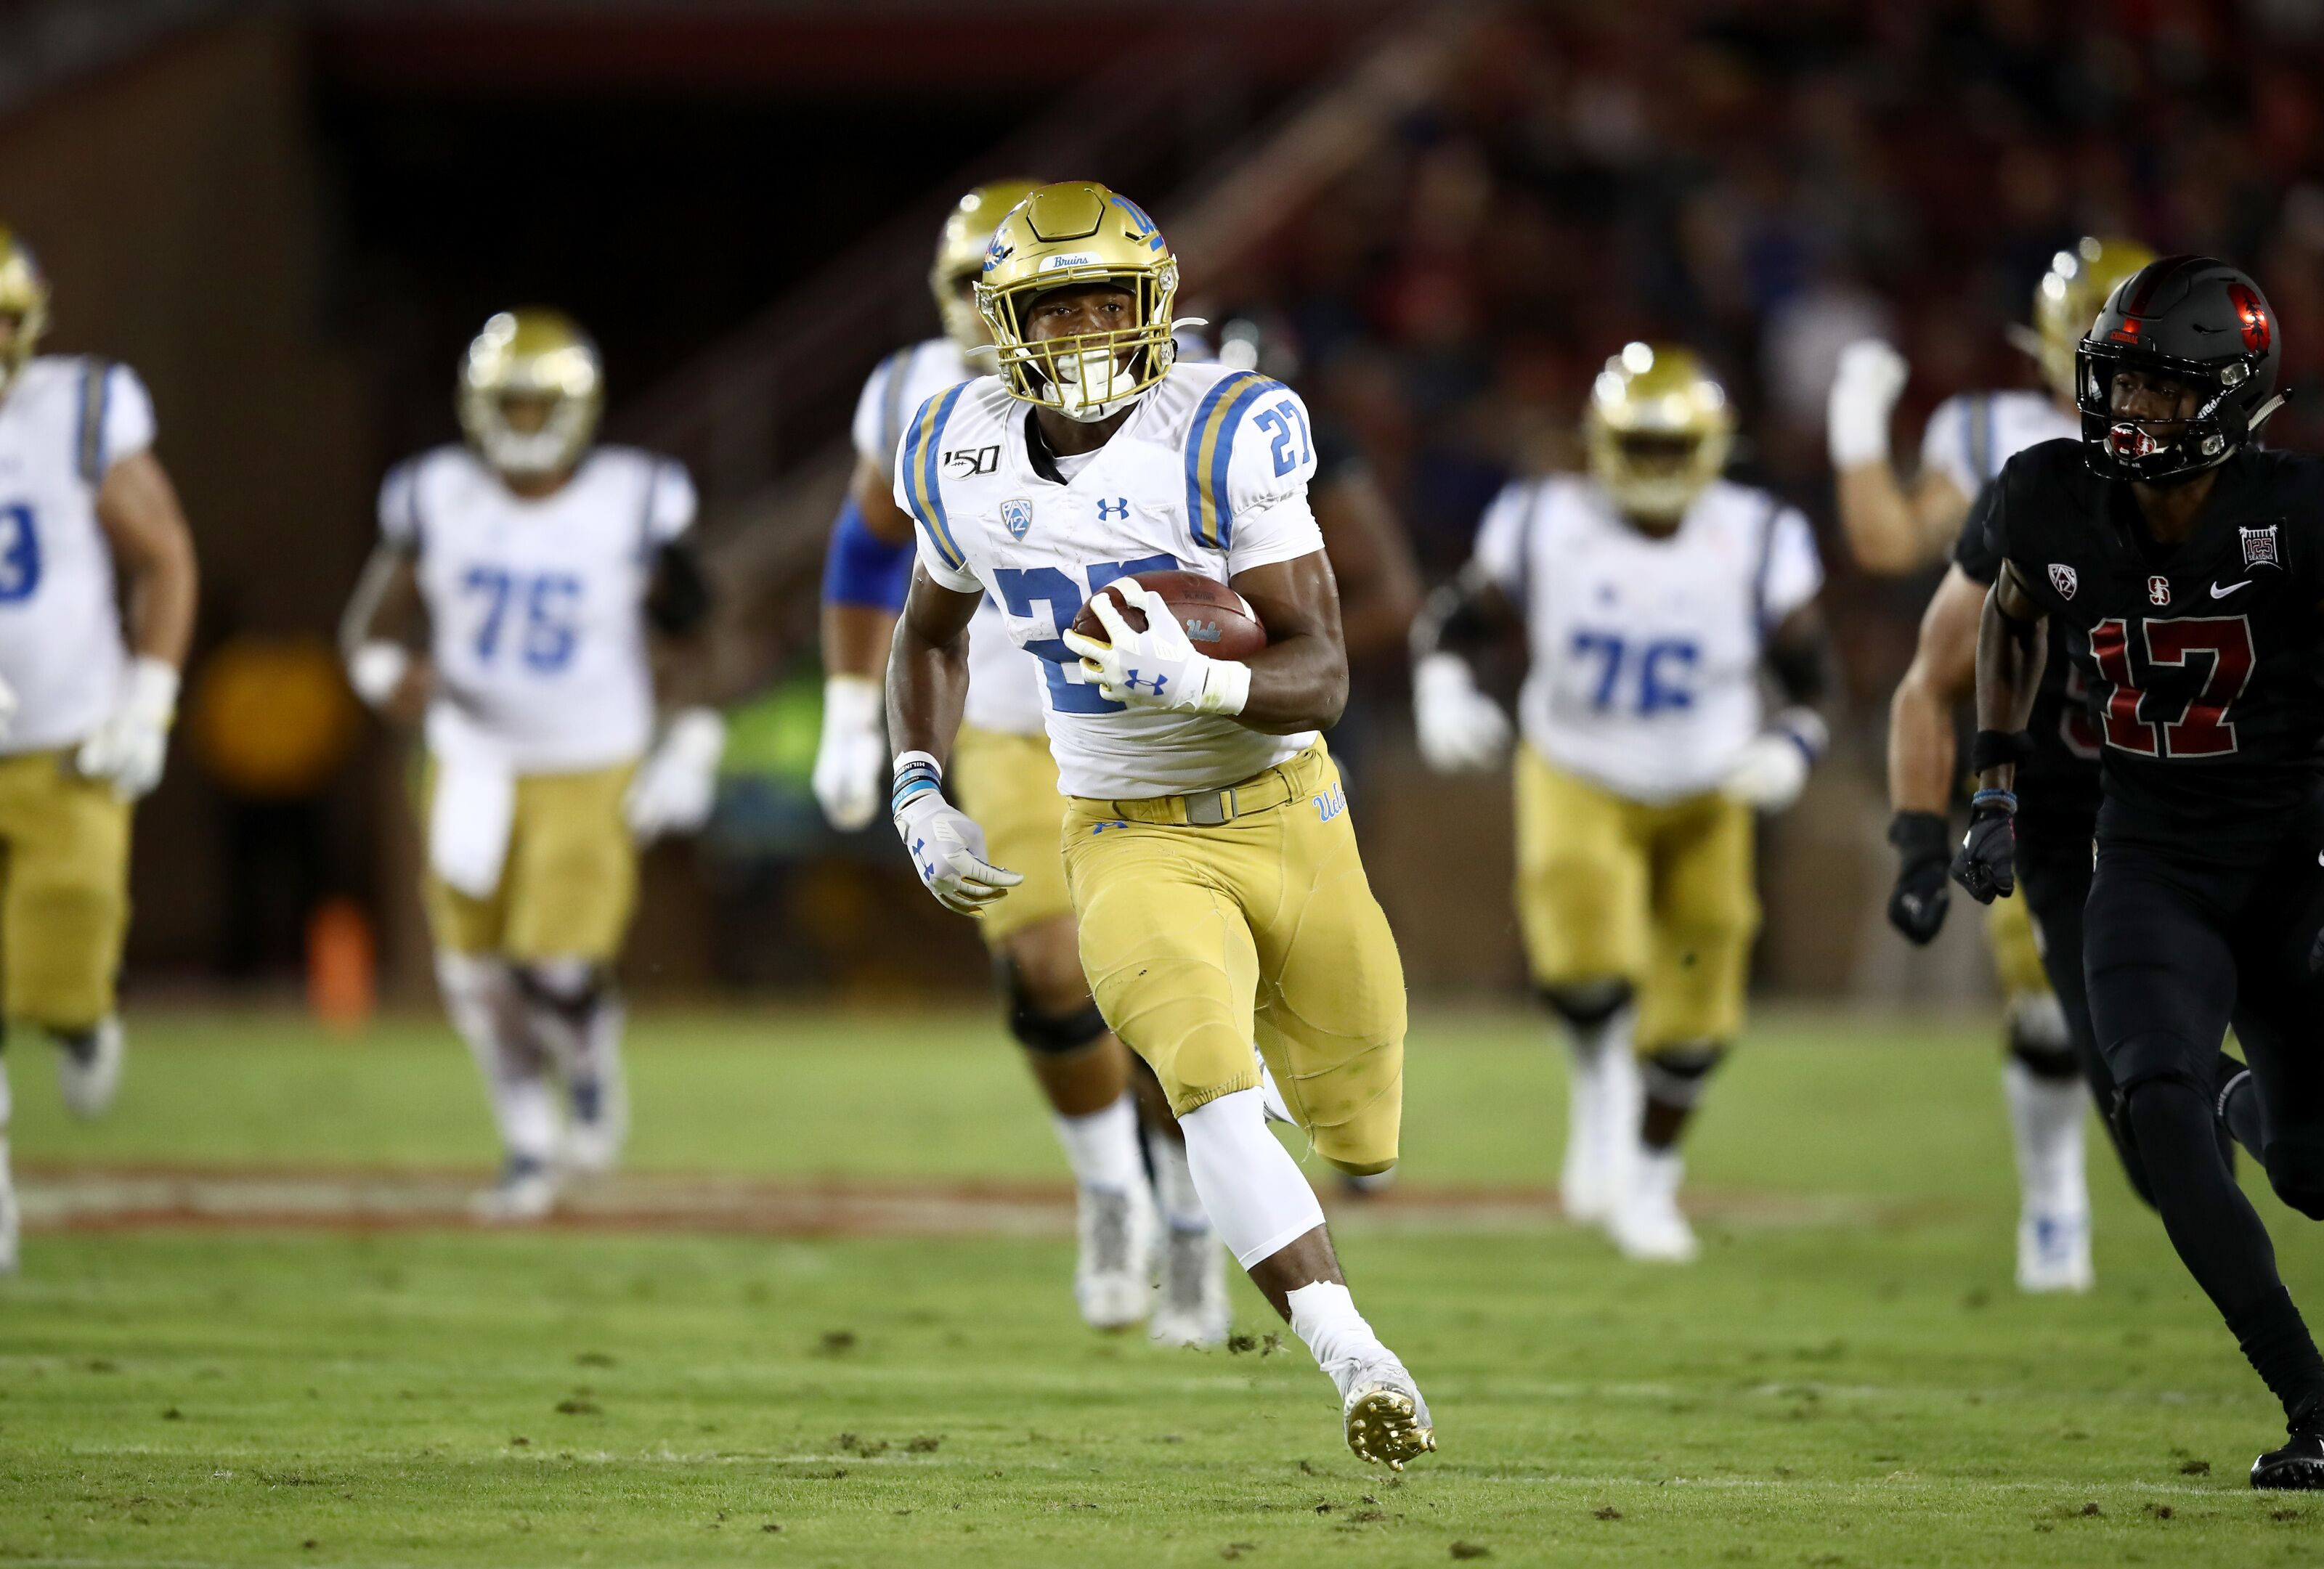 UCLA Football: 3 takeaways after blowout victory over Stanford